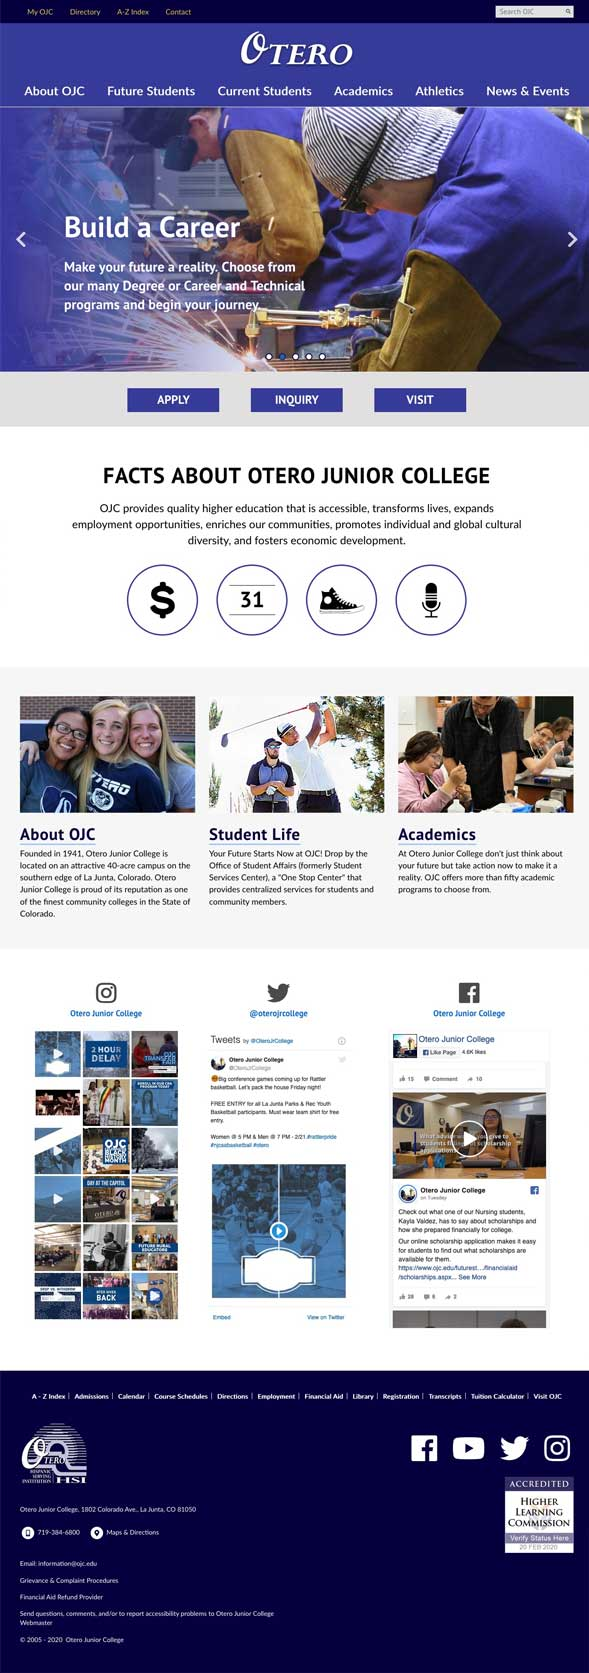 OJC Home Page